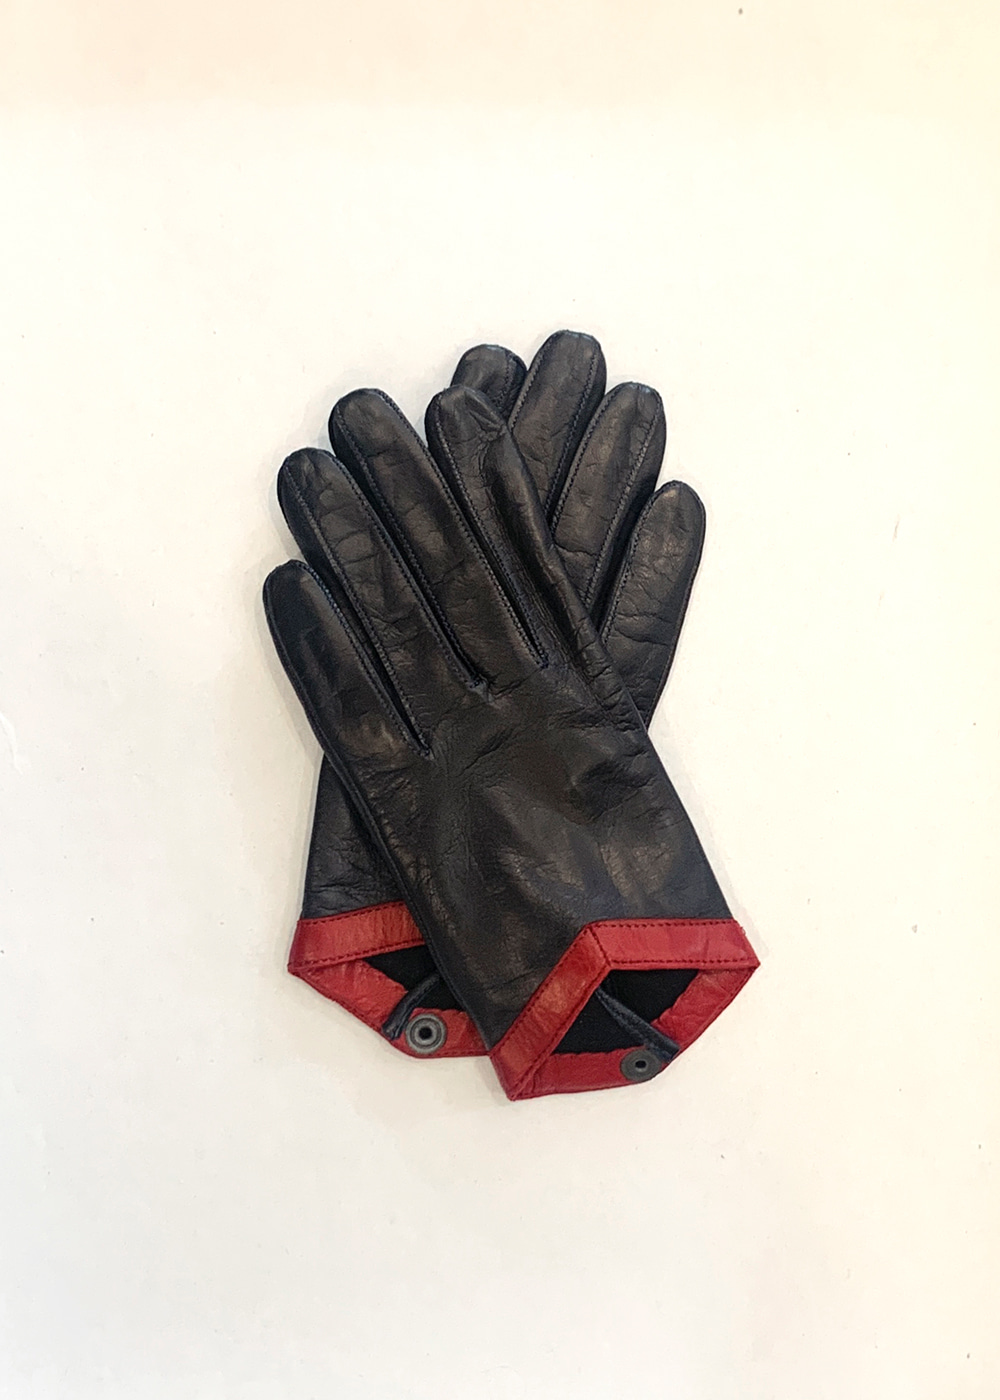 LAMB SKIN LEATHER GLOVES - navy & deep wine